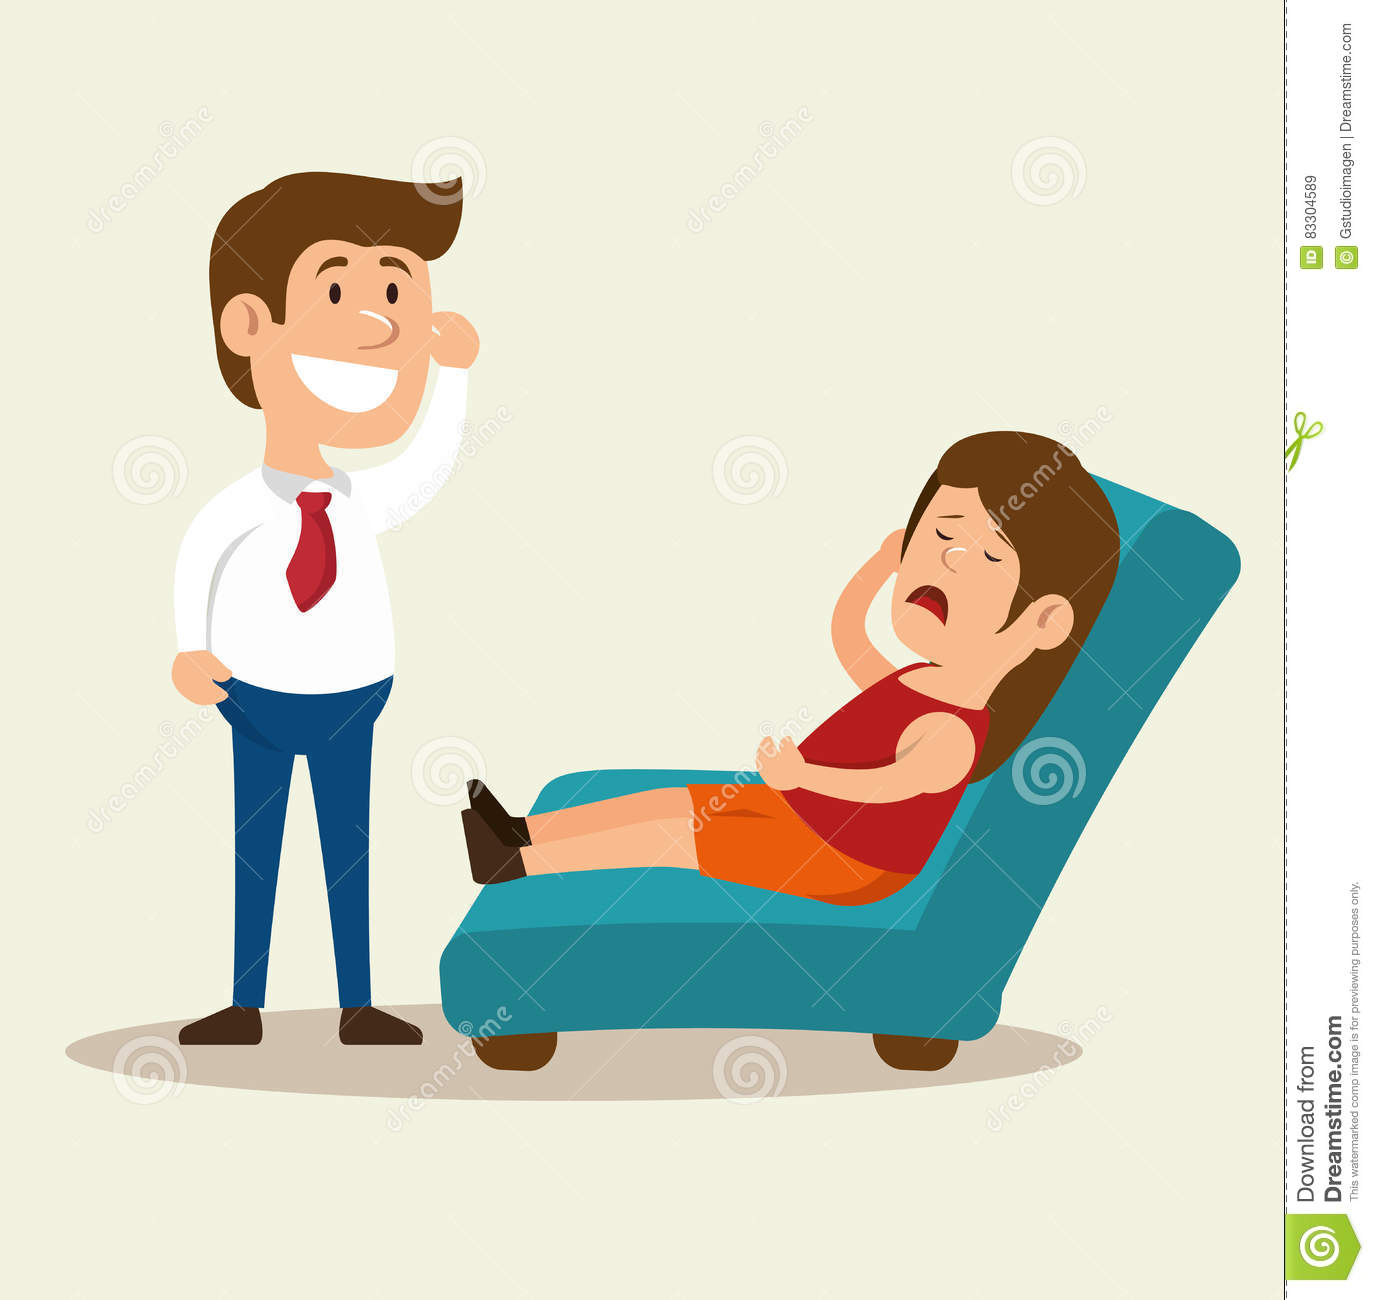 Woman Cartoon Mental Counseling Therapist Stock Illustration